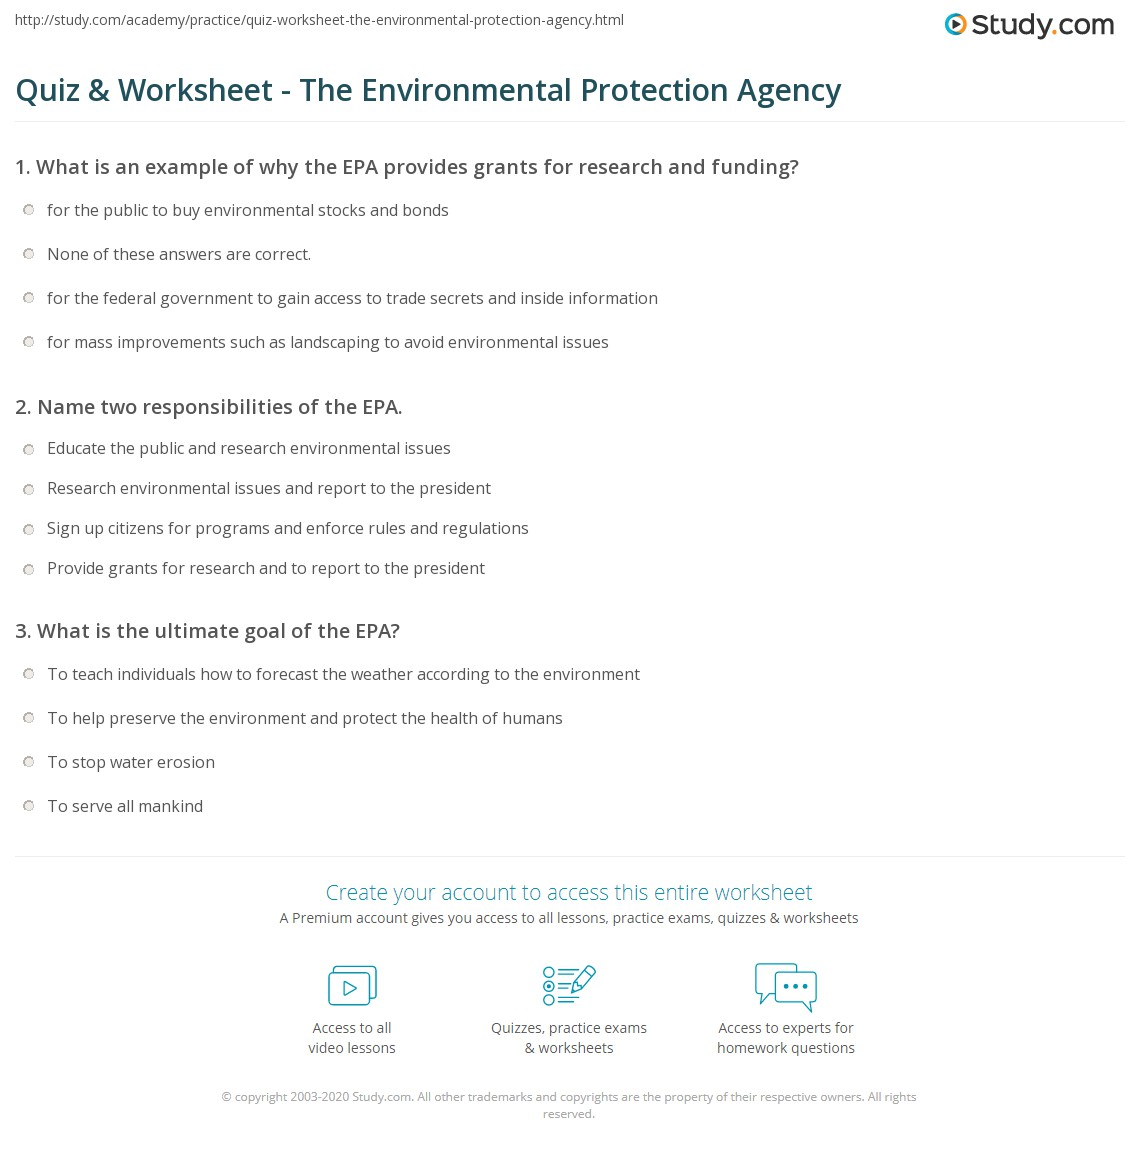 Quiz worksheet the environmental protection agency study name 2 responsibilities of the epa xflitez Choice Image